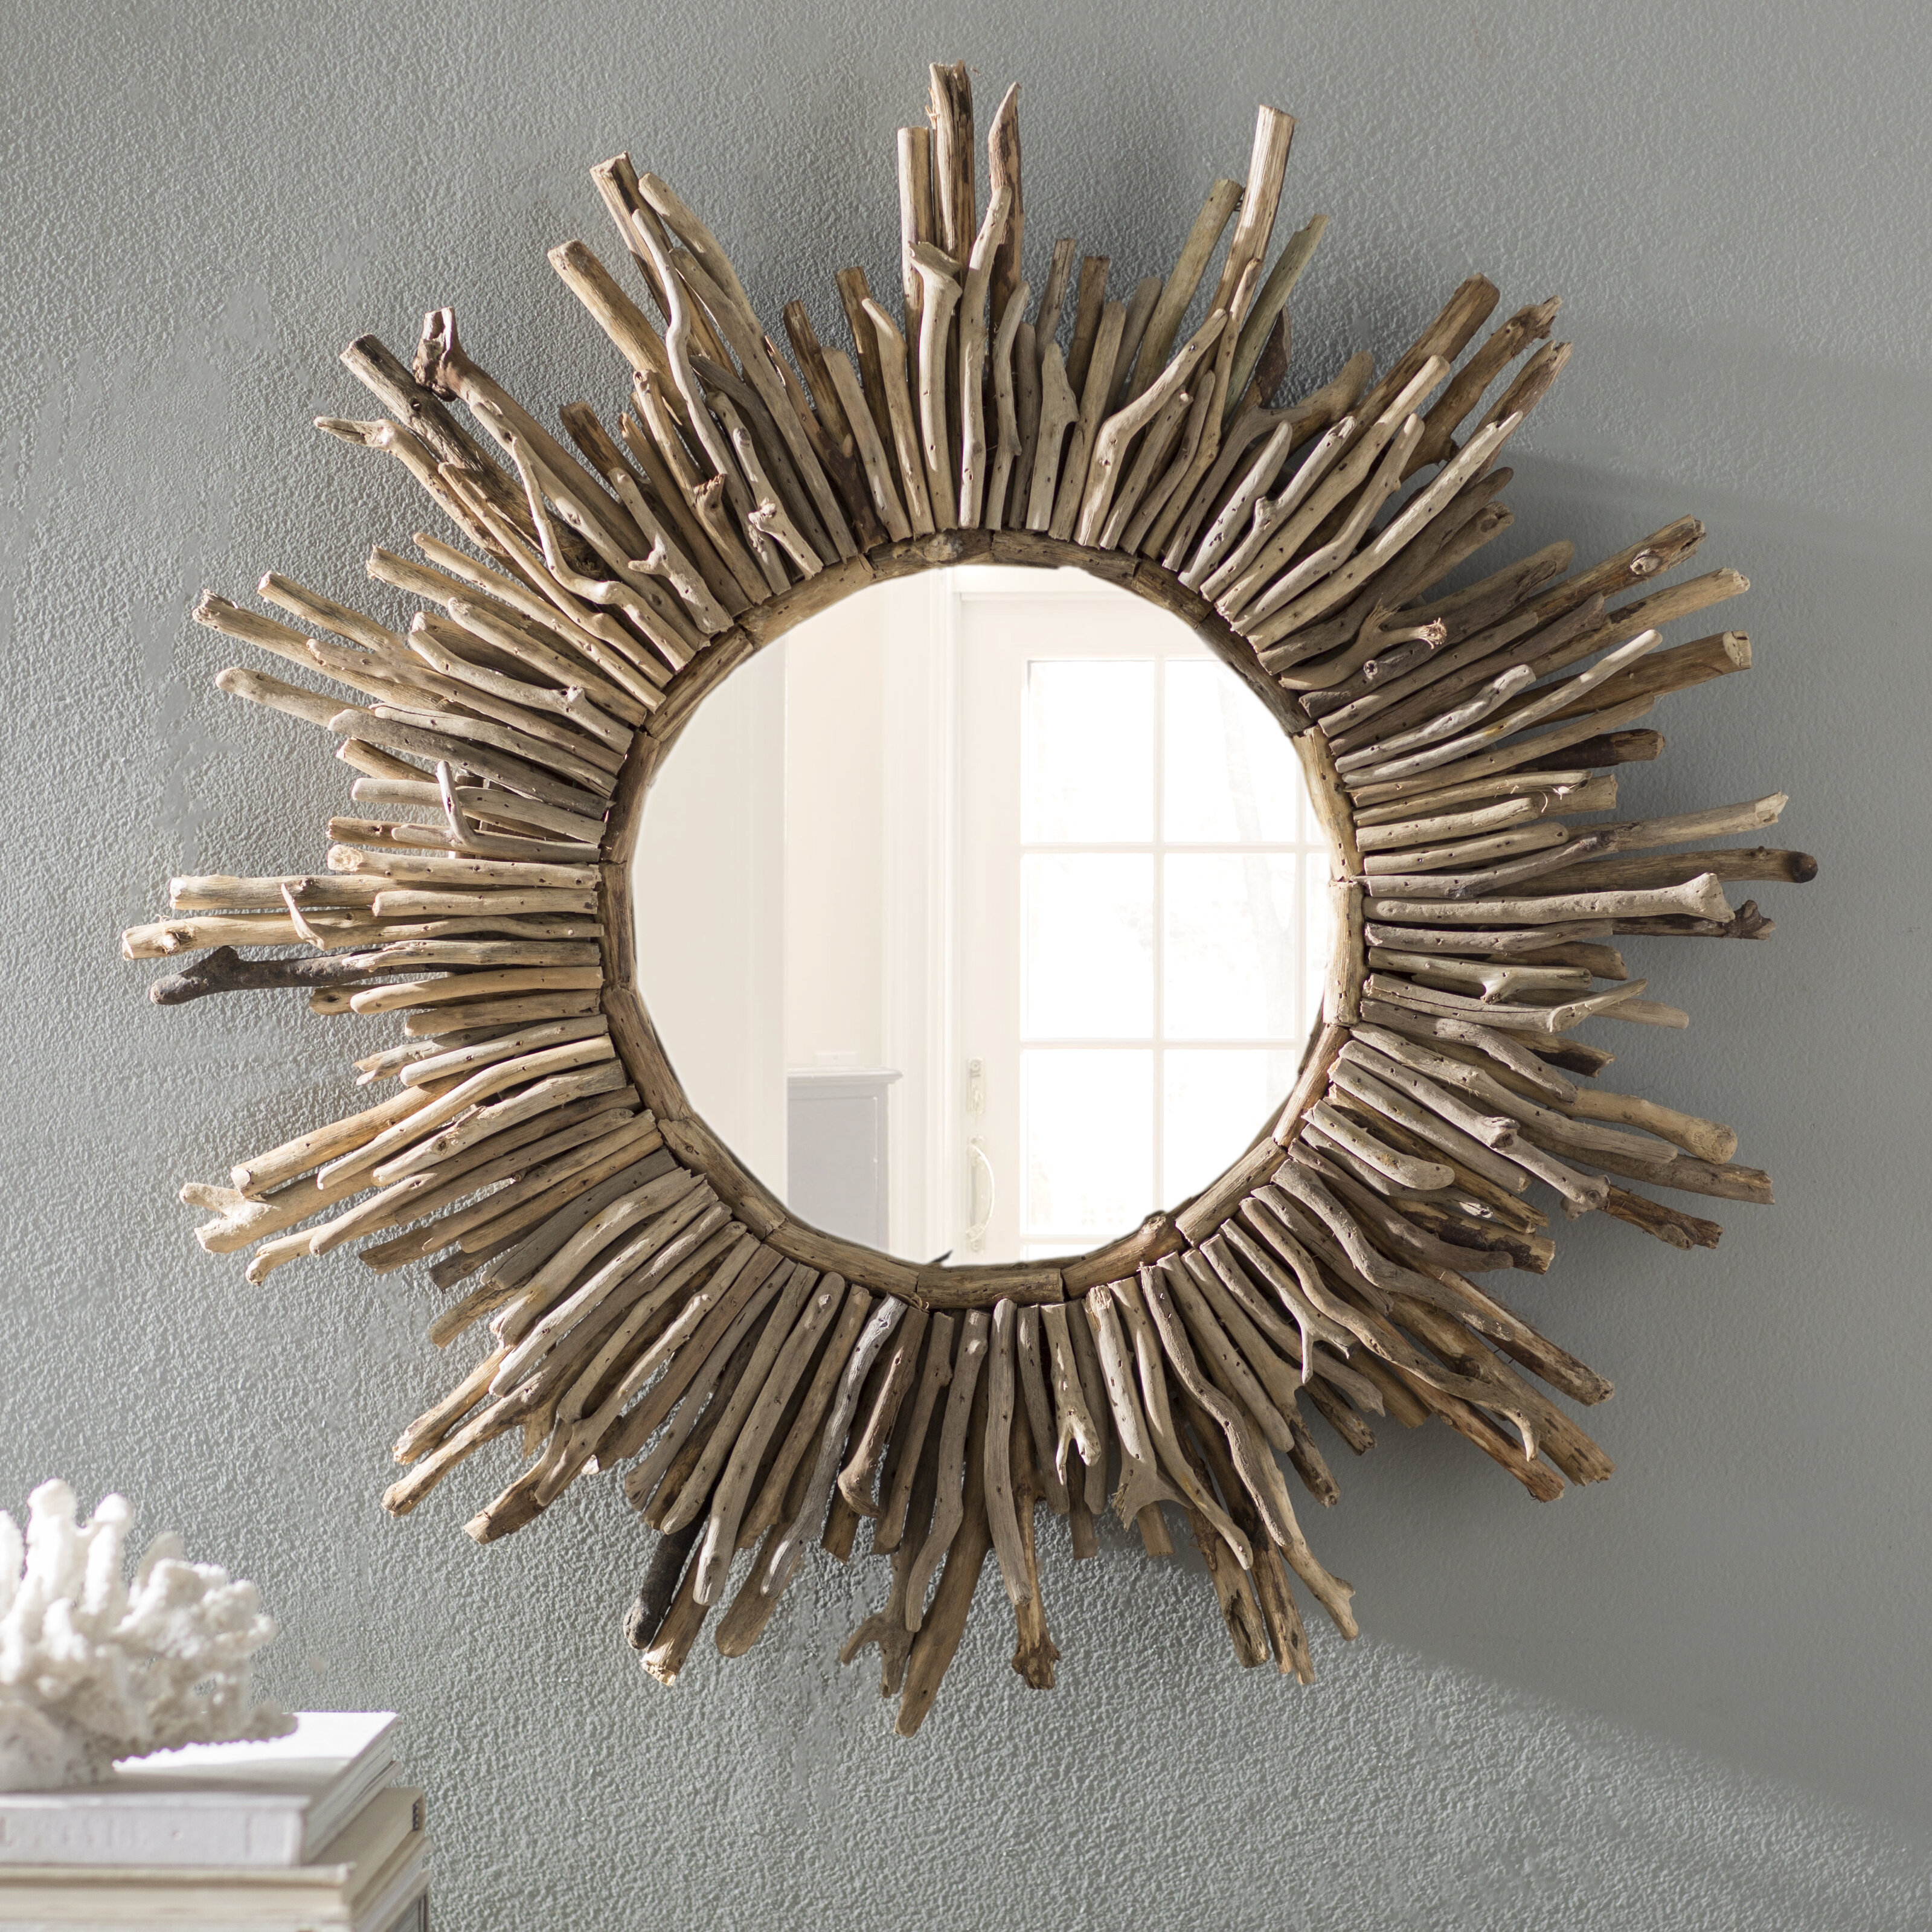 Sunburst Traditional Accent Mirror With Bracelet Traditional Accent Mirrors (View 5 of 20)